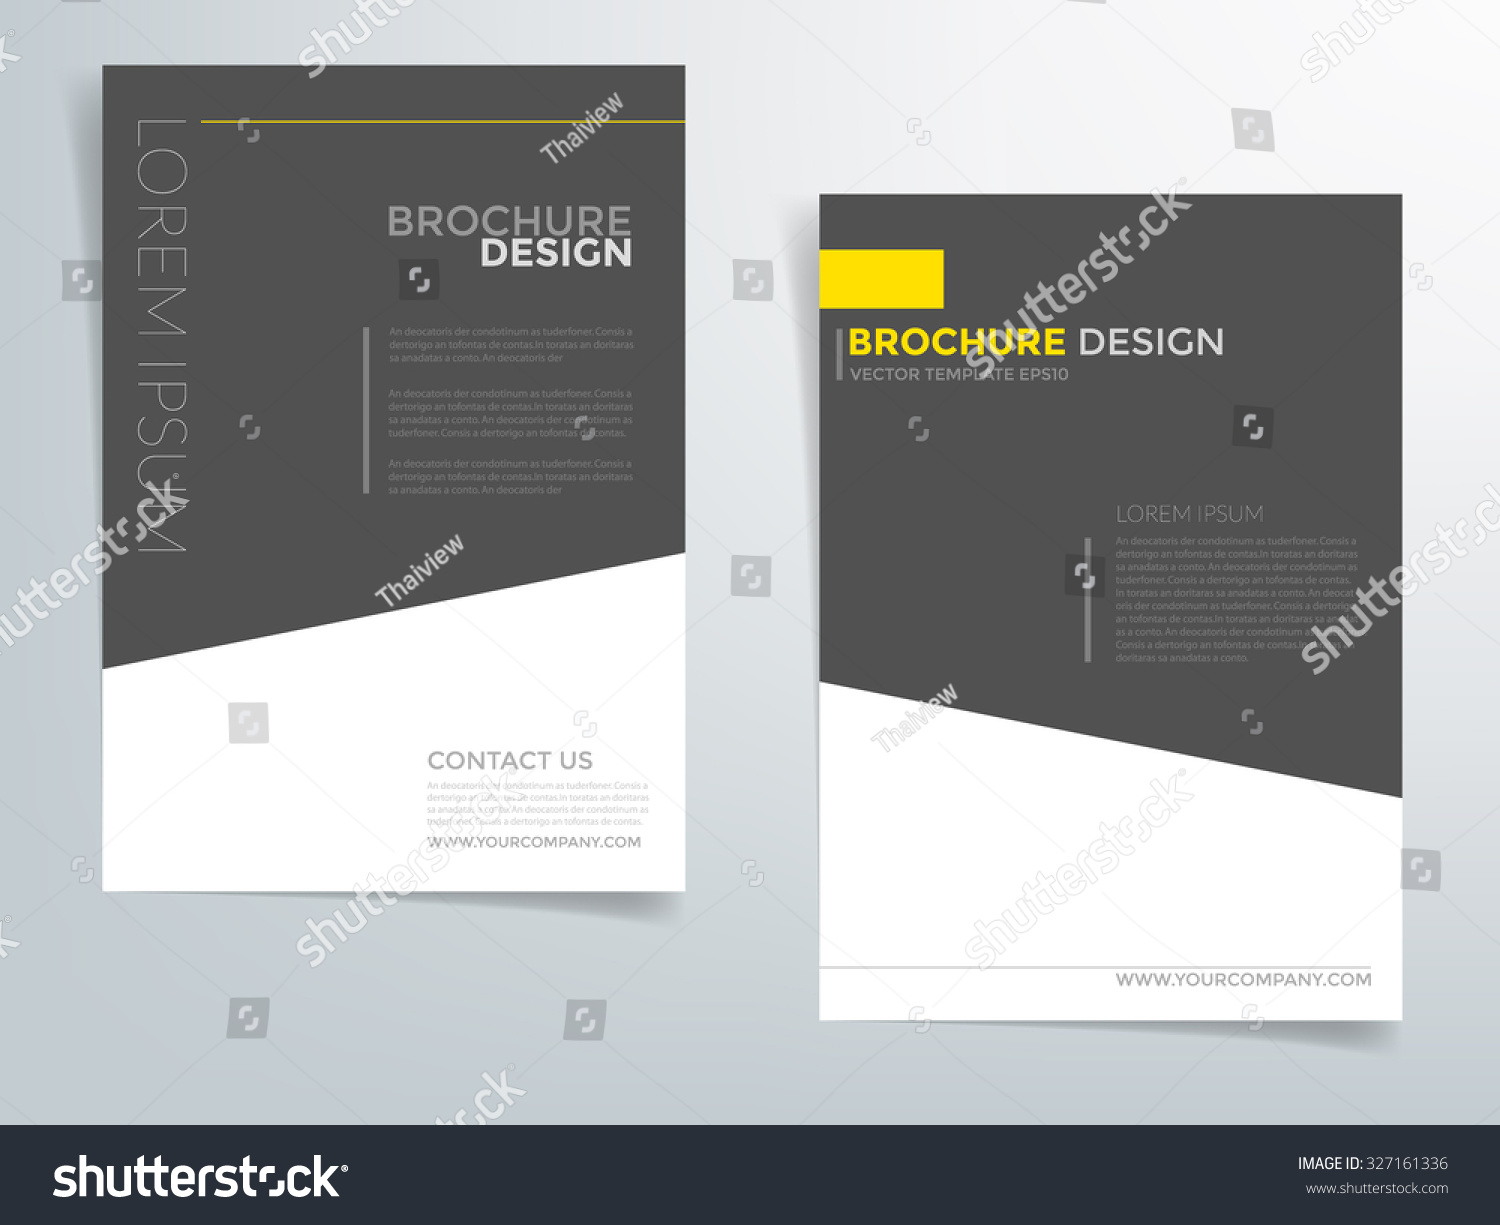 Brochure template flyer design vector background stock for Black brochure template